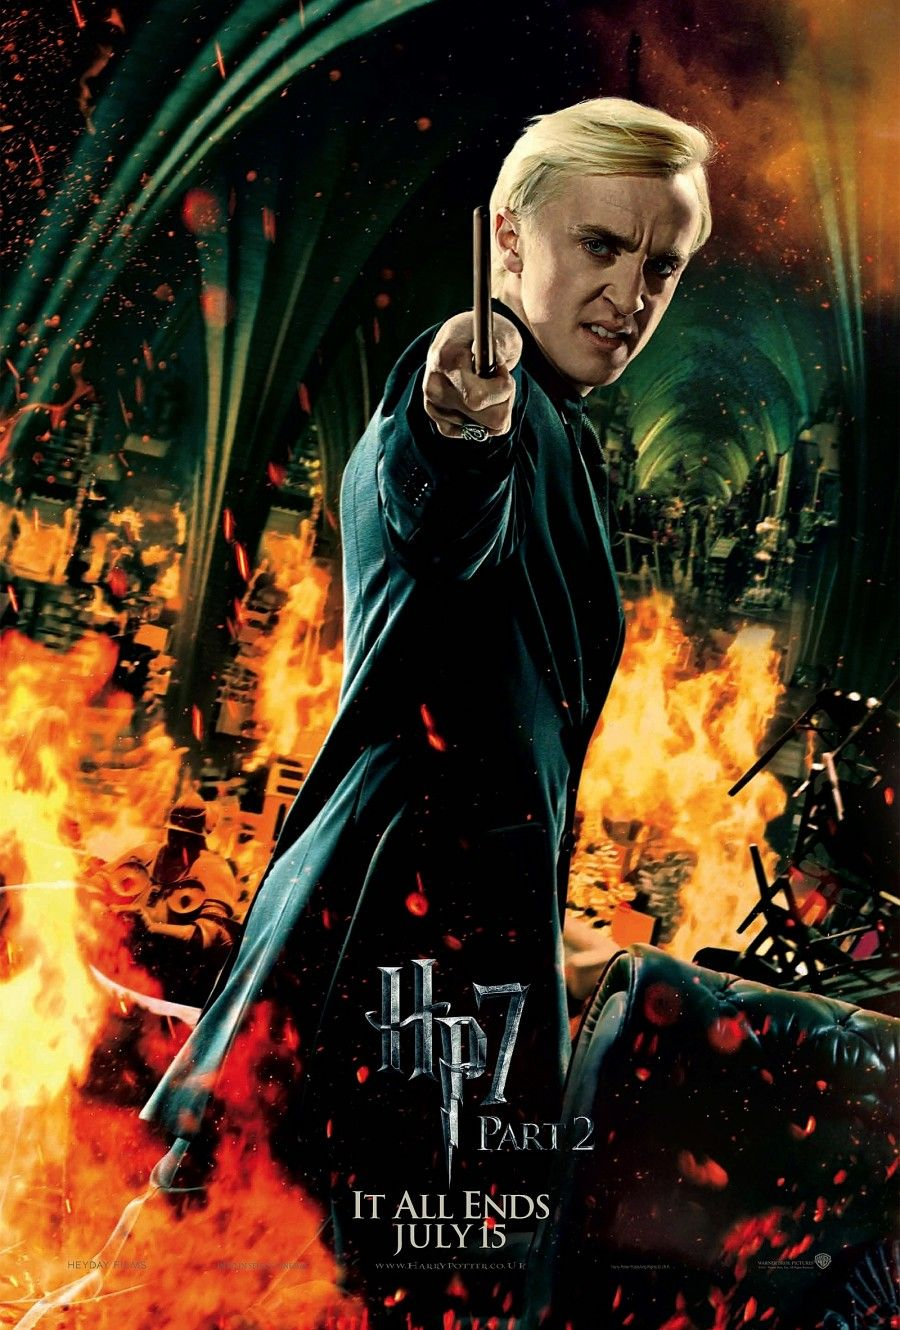 Draco malfoy tom felton in harry potter and the deathly hallows part 2